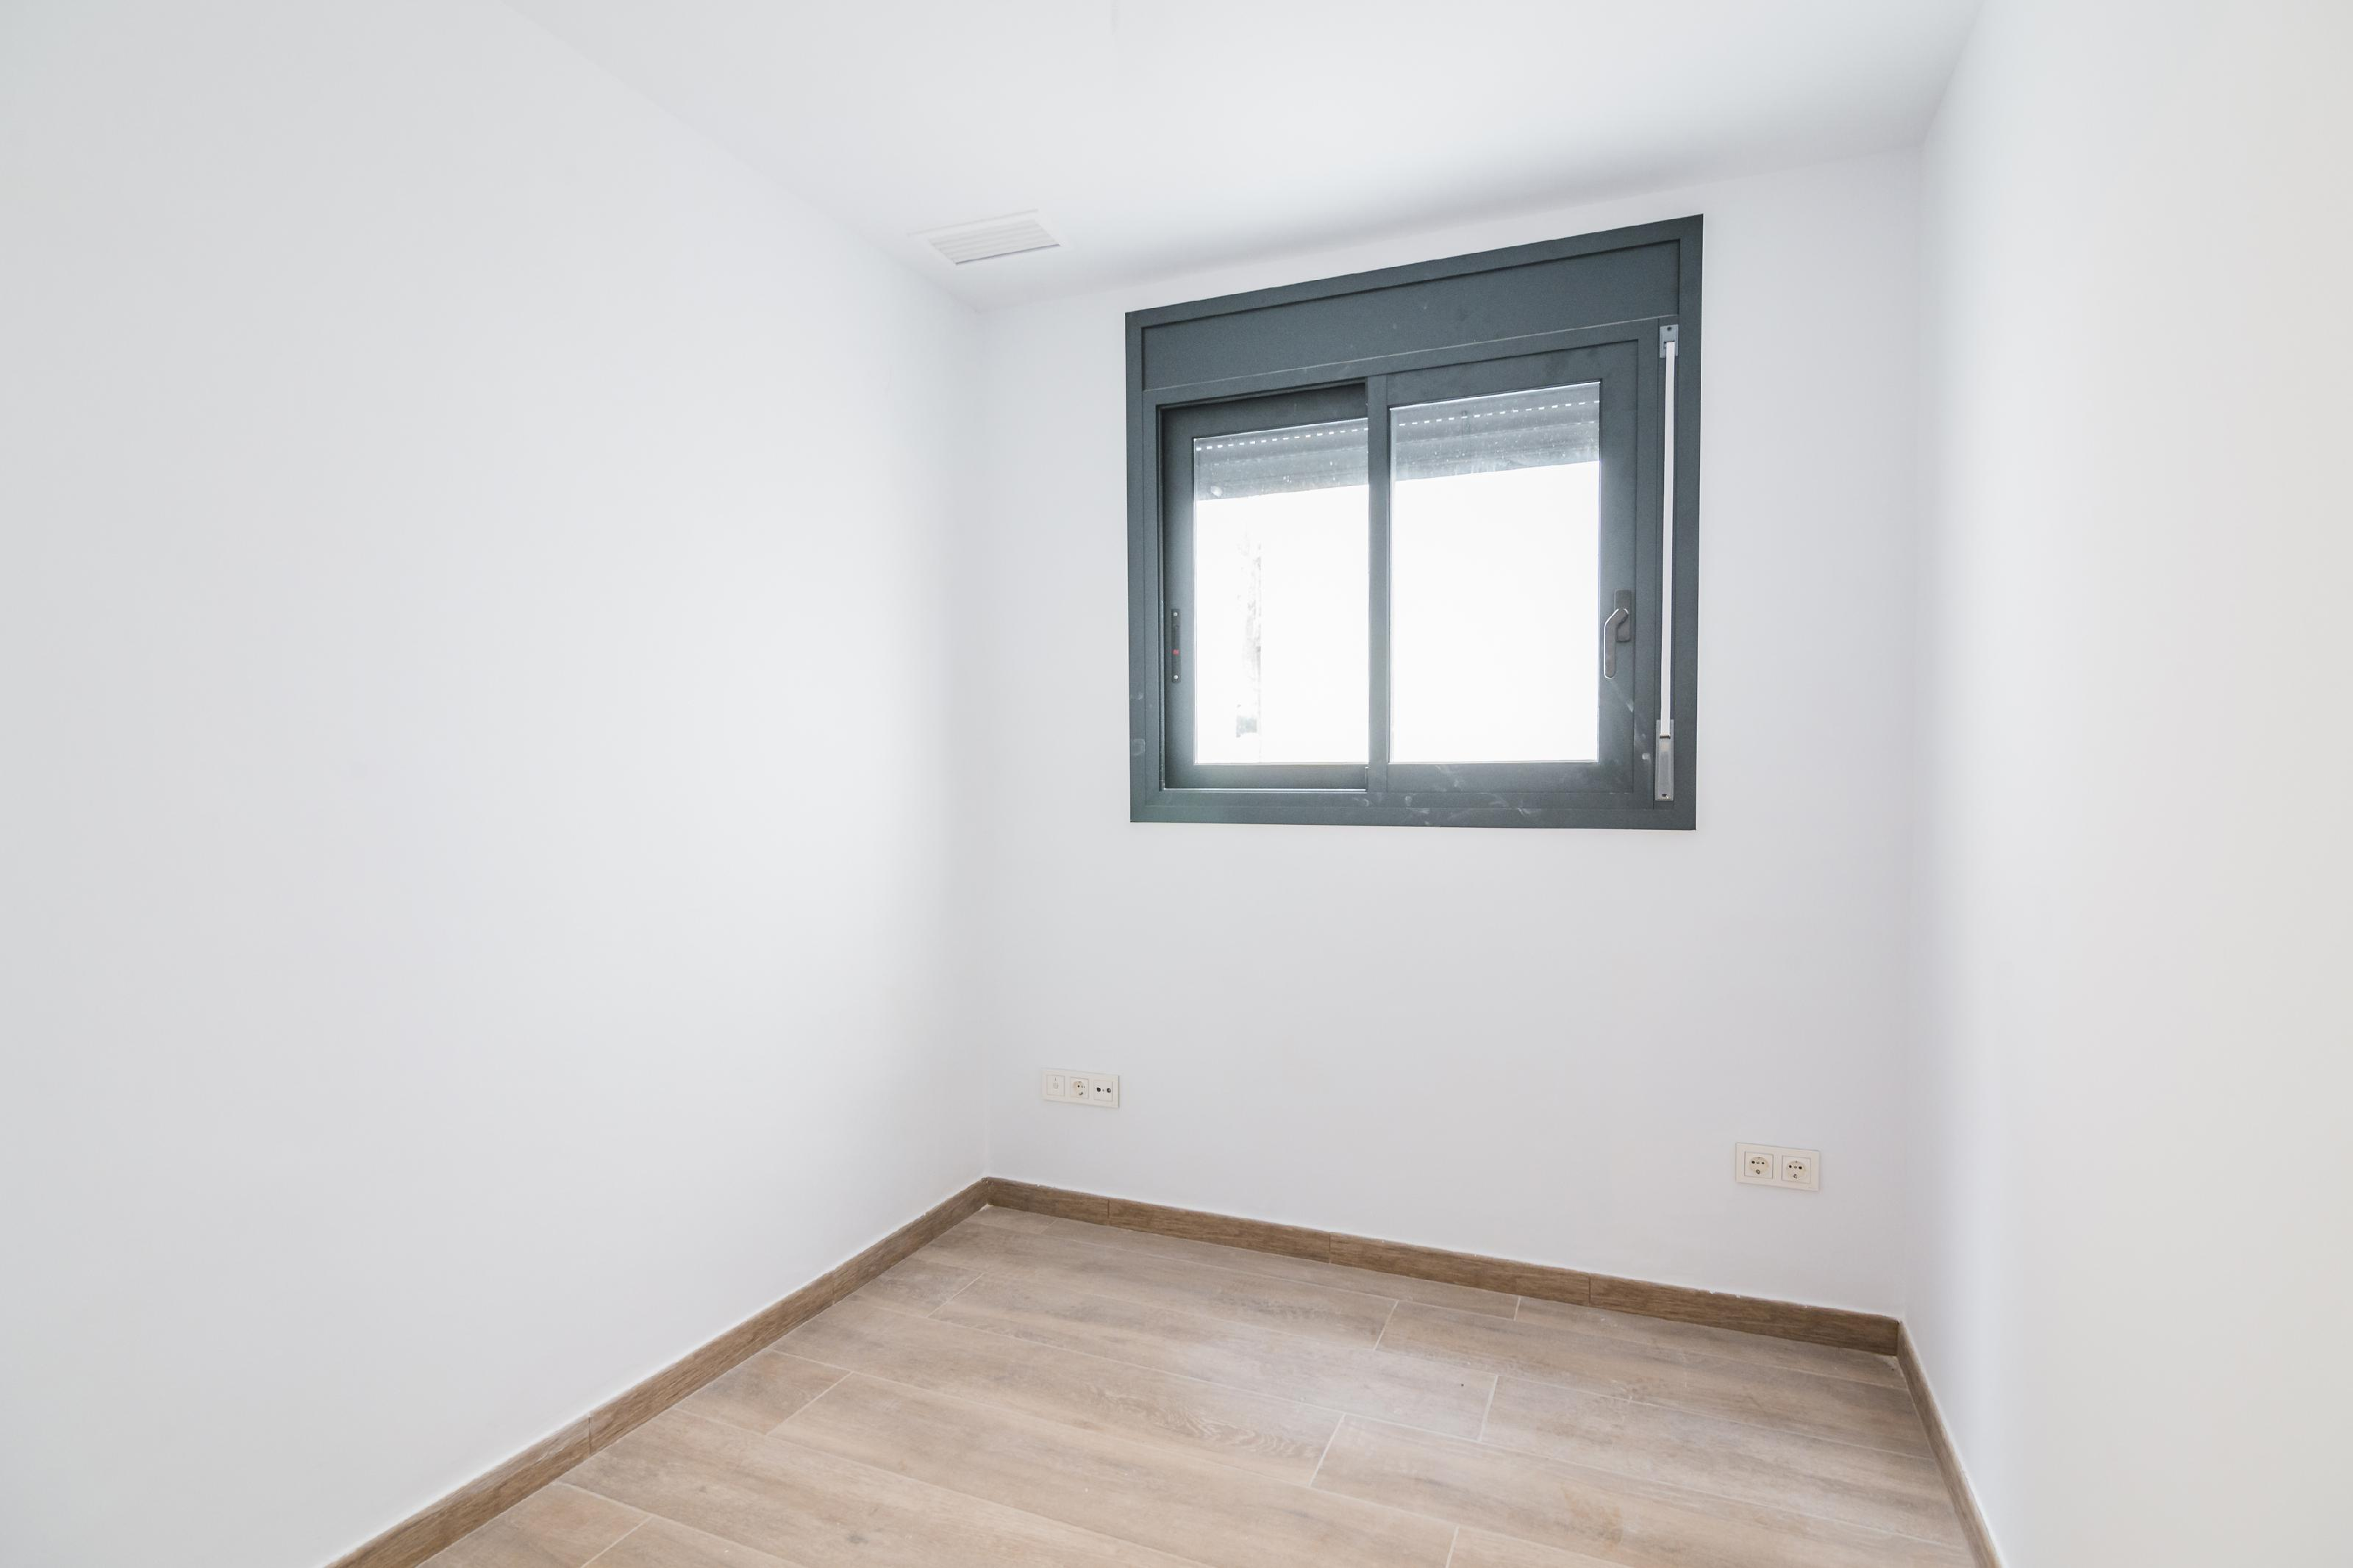 220653 Penthouse for sale in Sarrià-Sant Gervasi, Sant Gervasi-Galvany 4